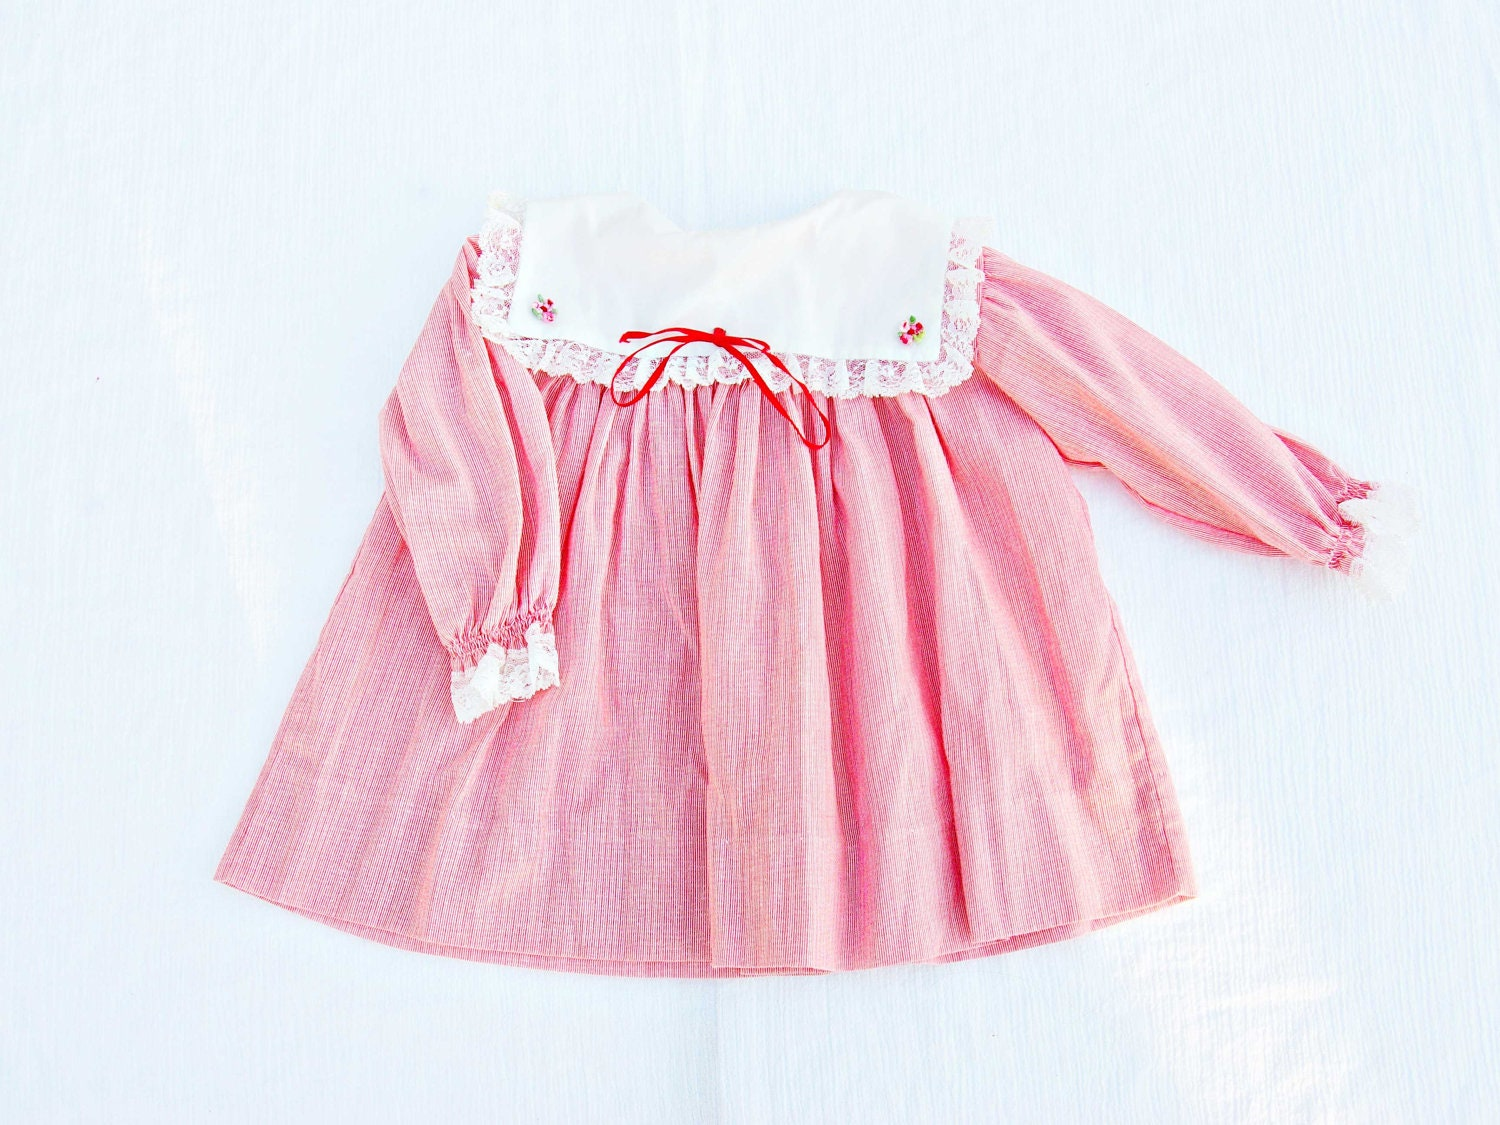 Vintage Baby Girl Red Pinstripe Dress, size 18 months, long sleeves, red bow, white lace - HeySweetiePieShop